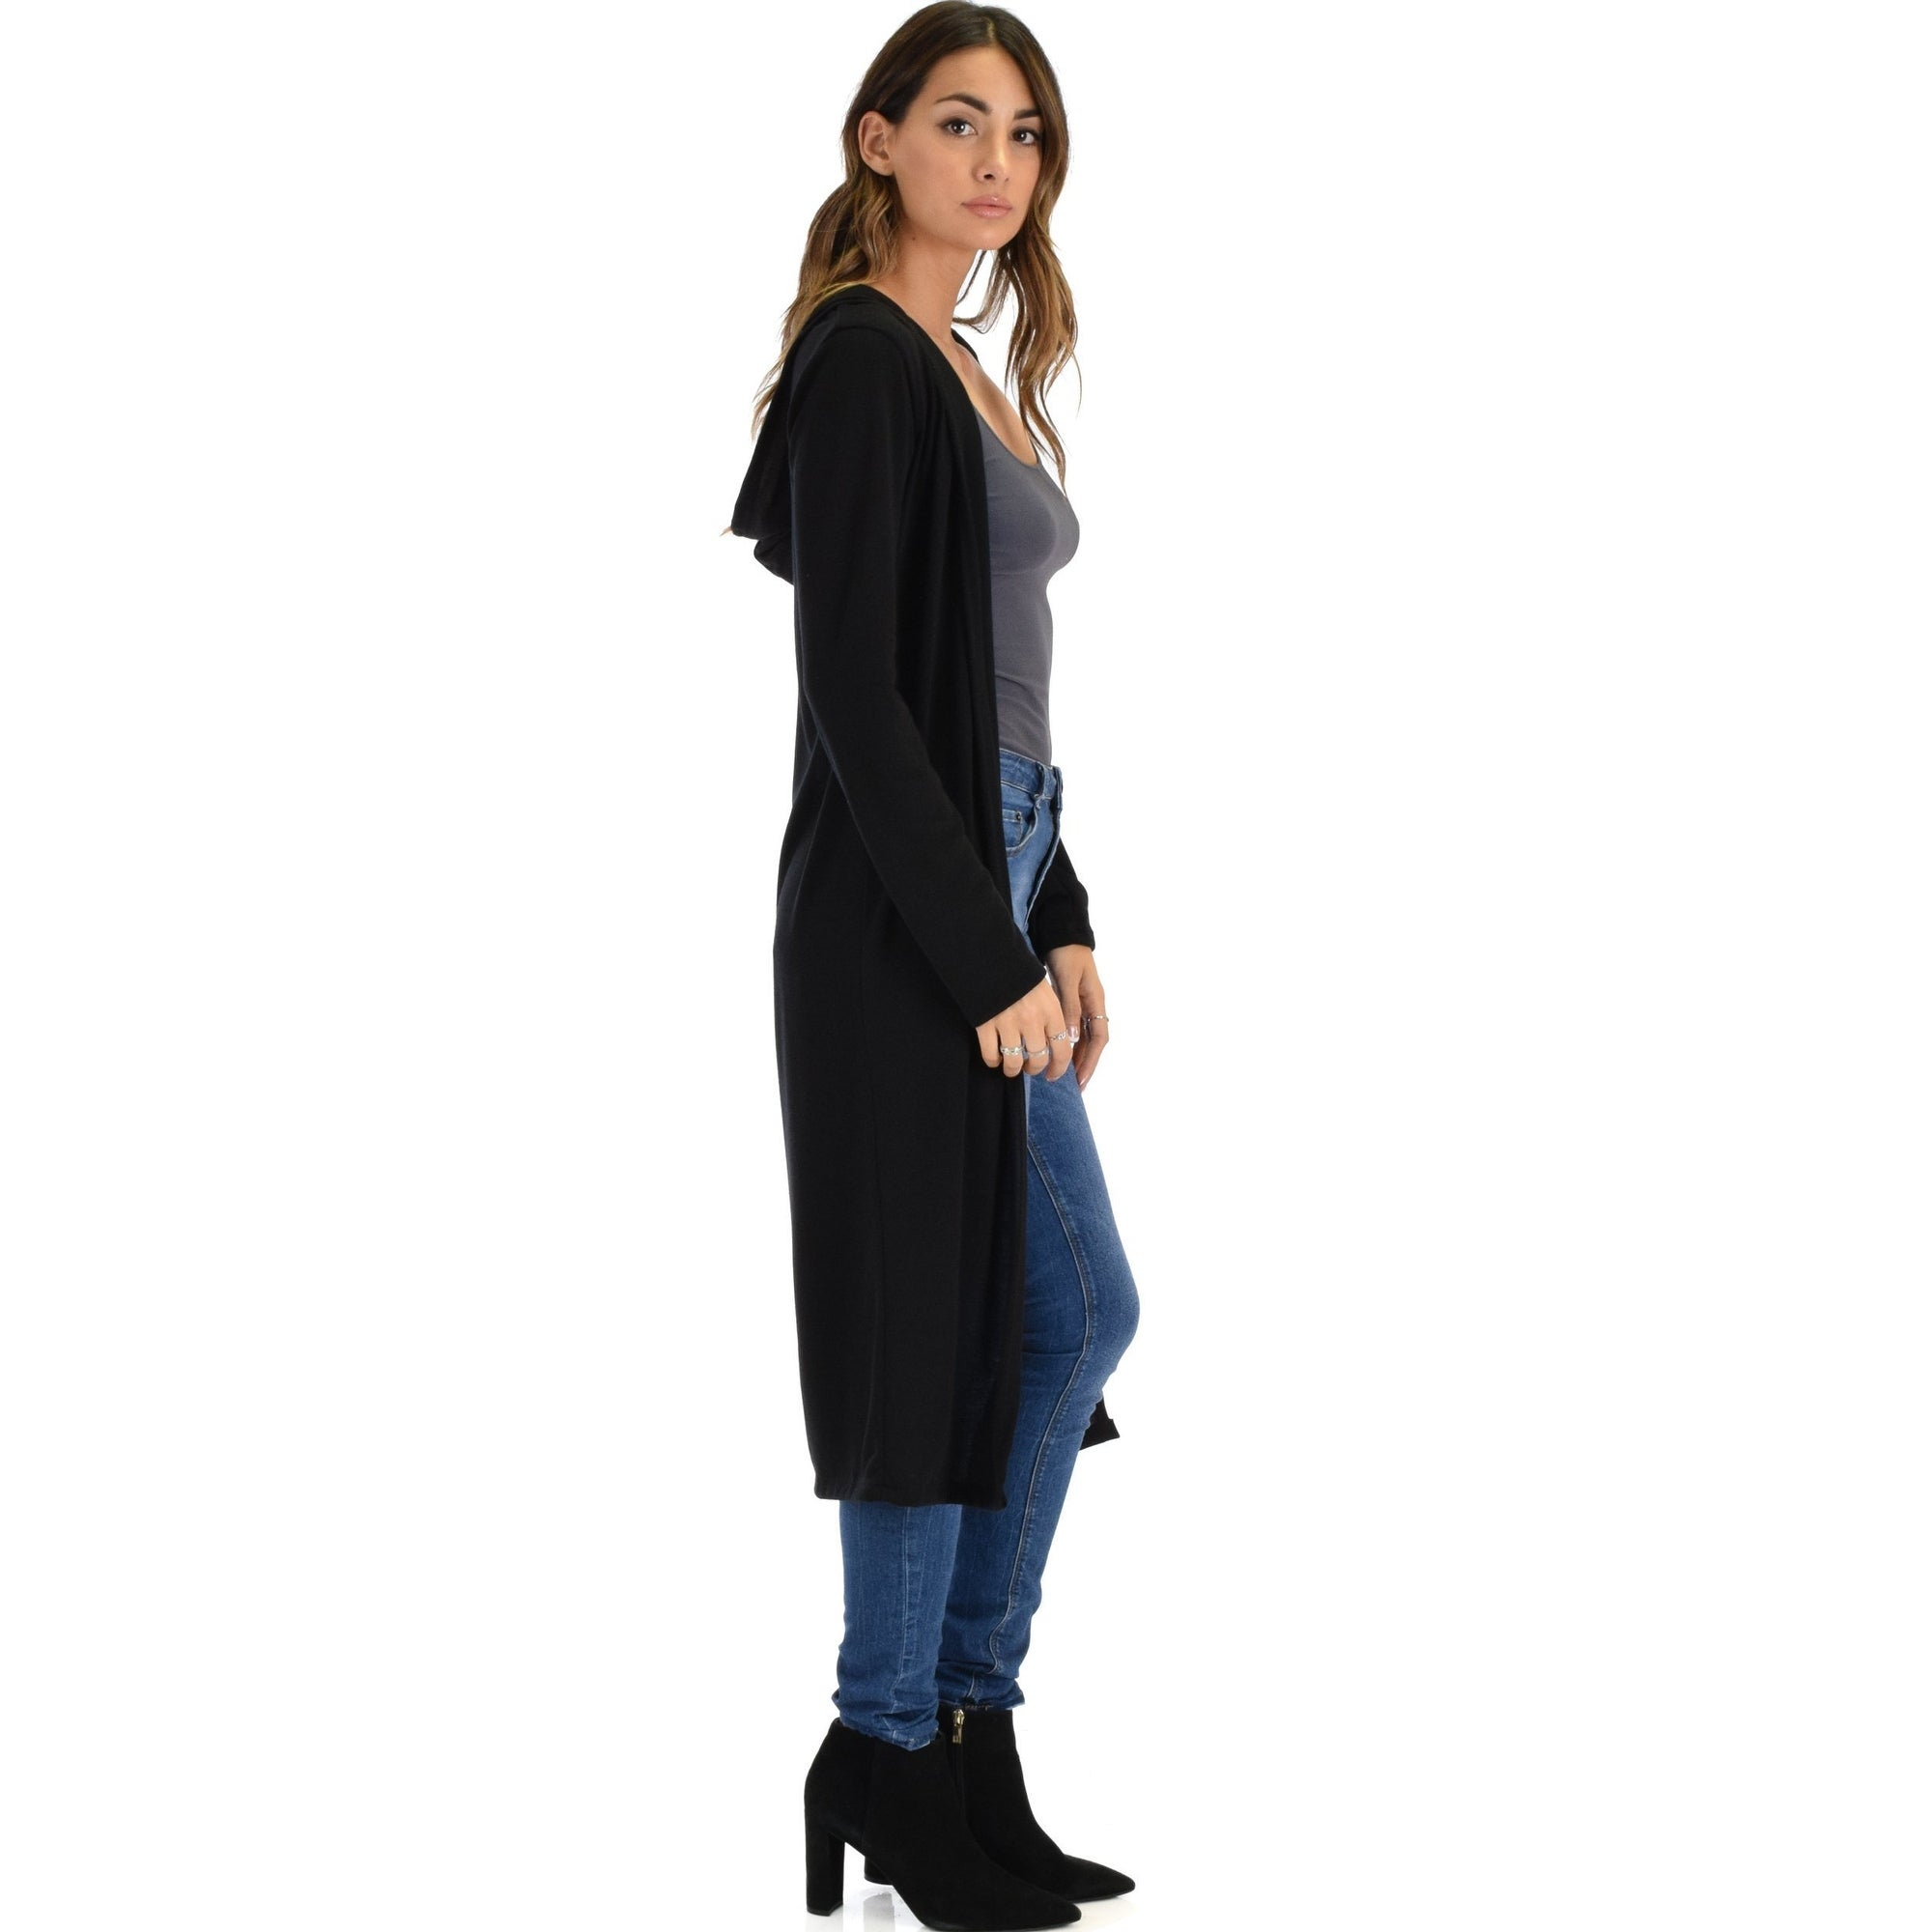 5eb89068e37 cover me up long line black hooded cardigan-Black-Small